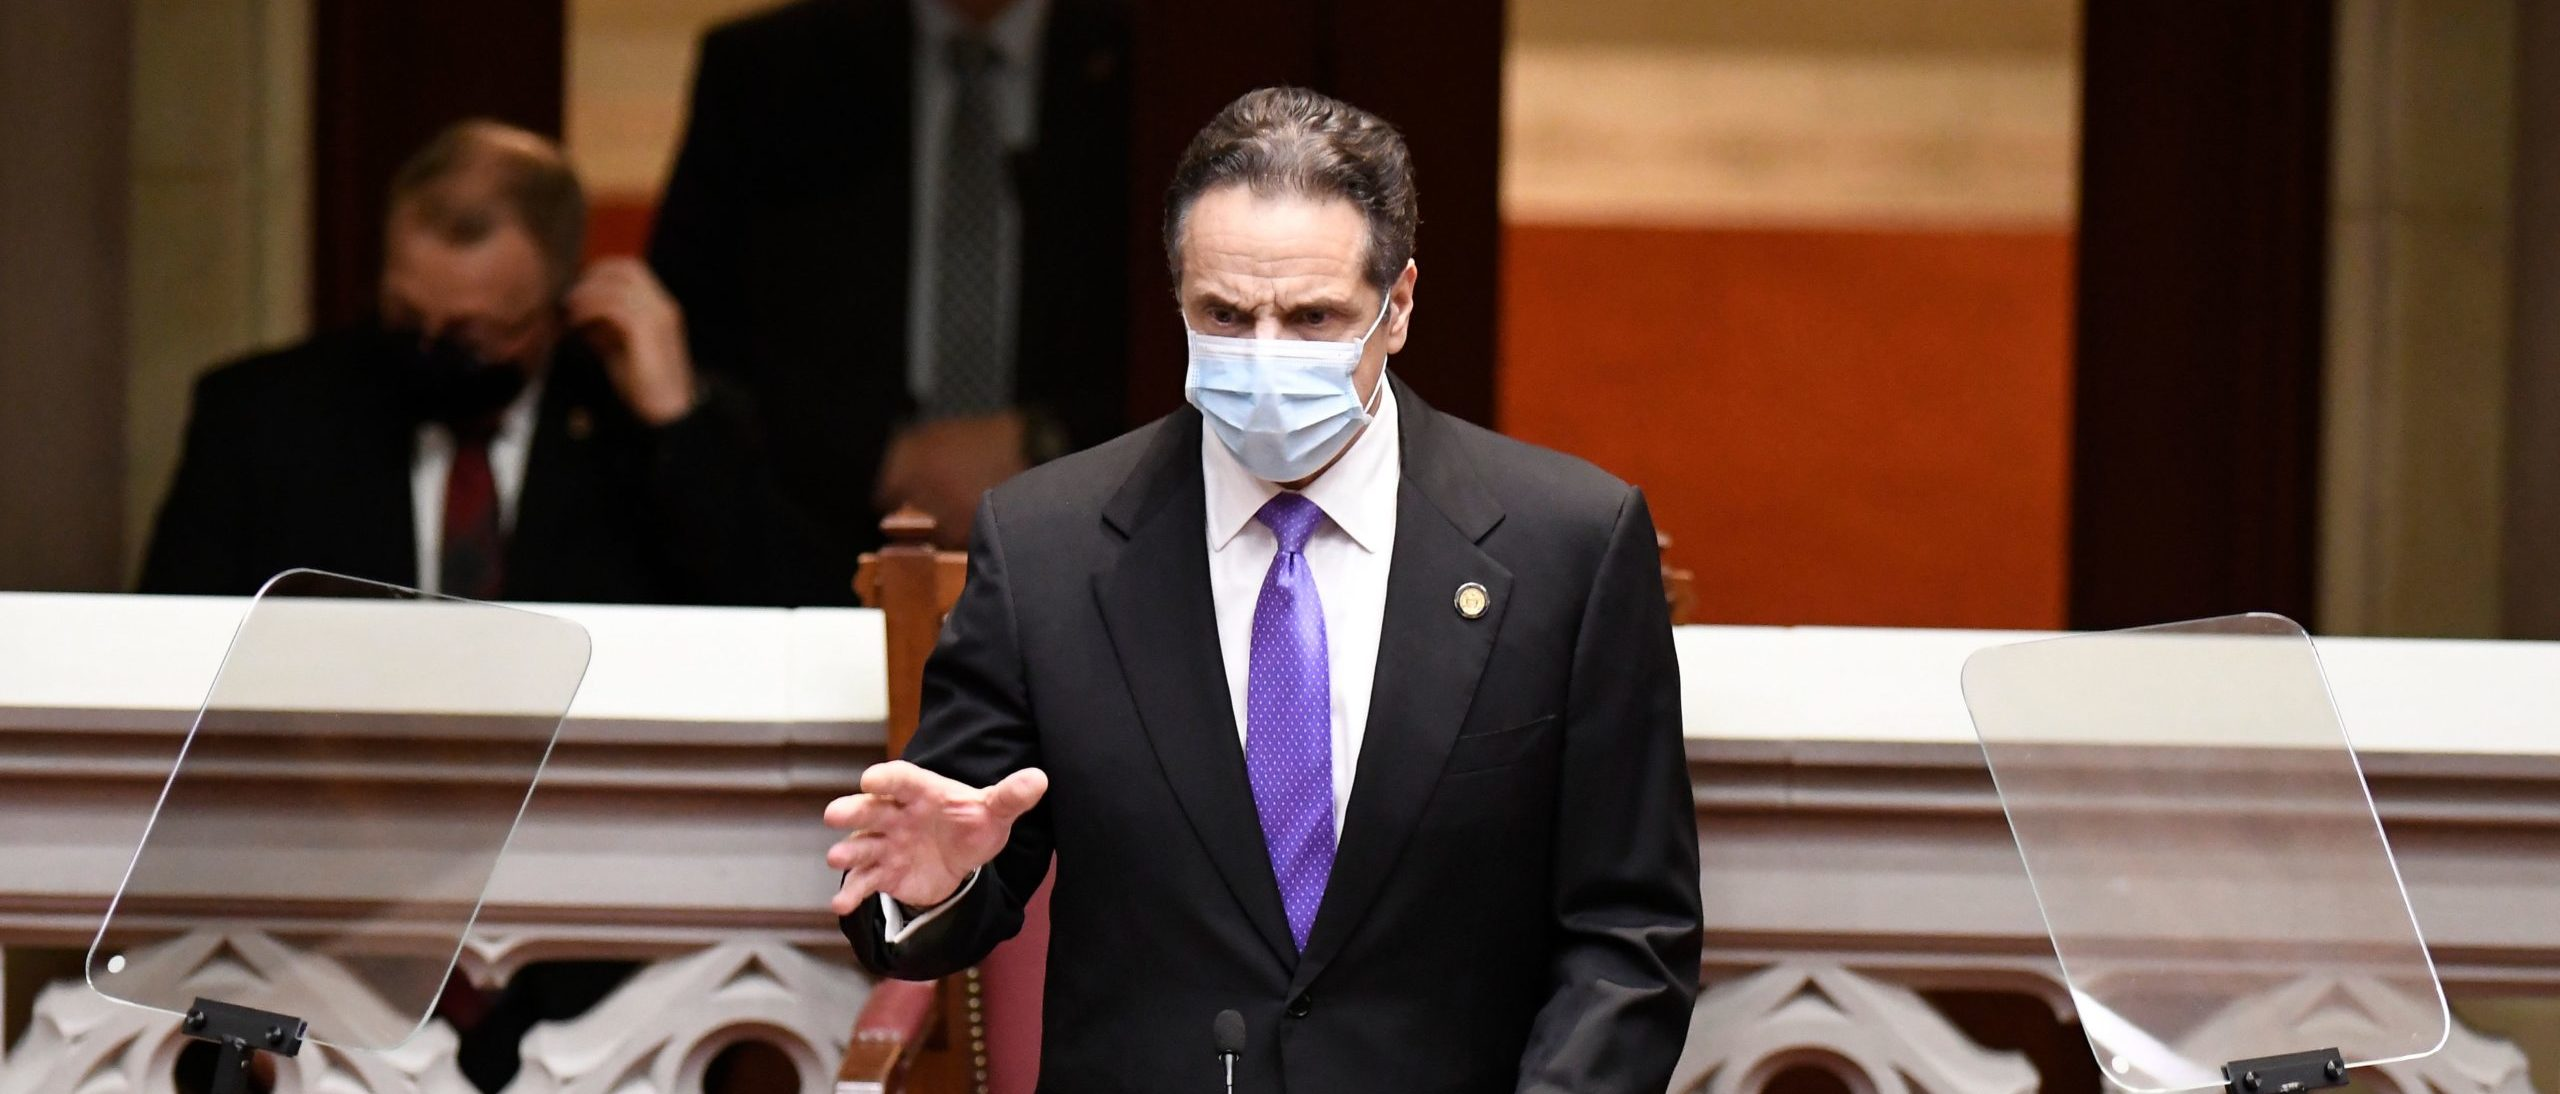 New York Governor Andrew Cuomo speaks to members of New York state's Electoral College before voting for President and Vice President in the Assembly Chamber at the state Capitol in Albany, New York on December 14, 2020. - Joe Biden's march to the White House -- overshadowed by President Donald Trump's frantic attempts to overturn the US election -- is to be formalized when the Electoral College meets to confirm the Democrat's win. (Photo by Hans PENNINK / POOL / AFP) (Photo by HANS PENNINK/POOL/AFP via Getty Images)